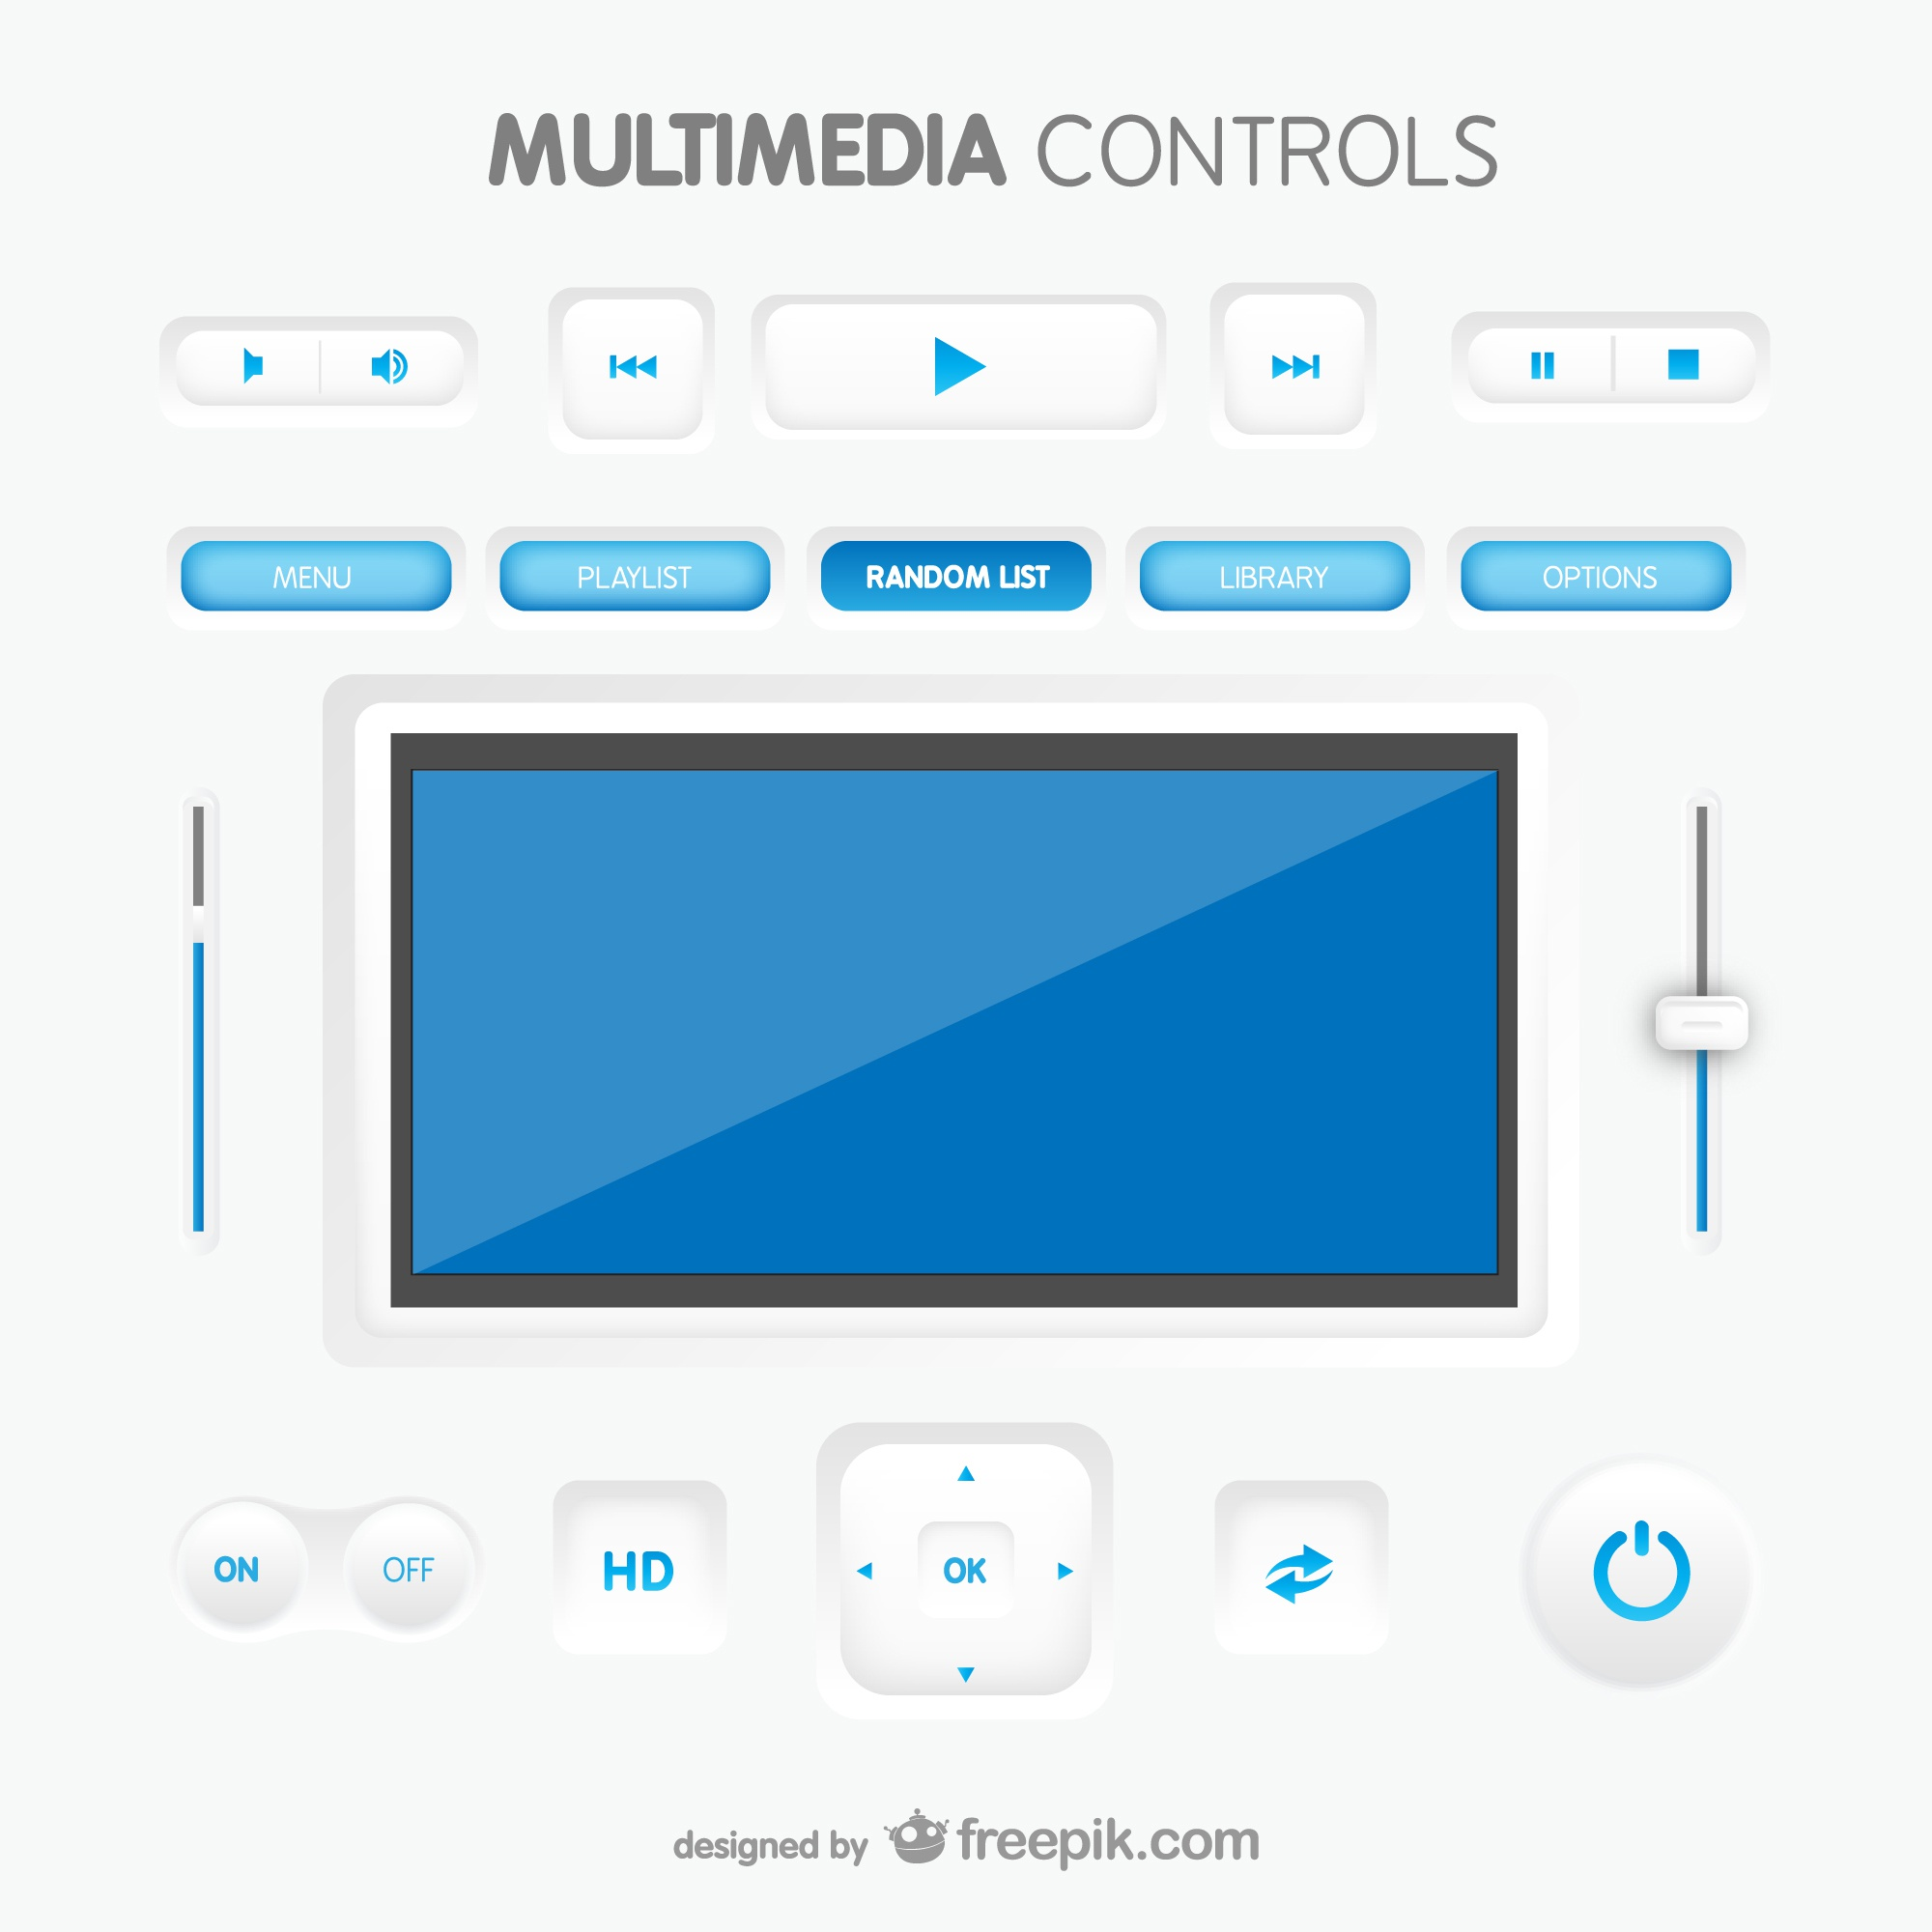 Multimedia controls interface